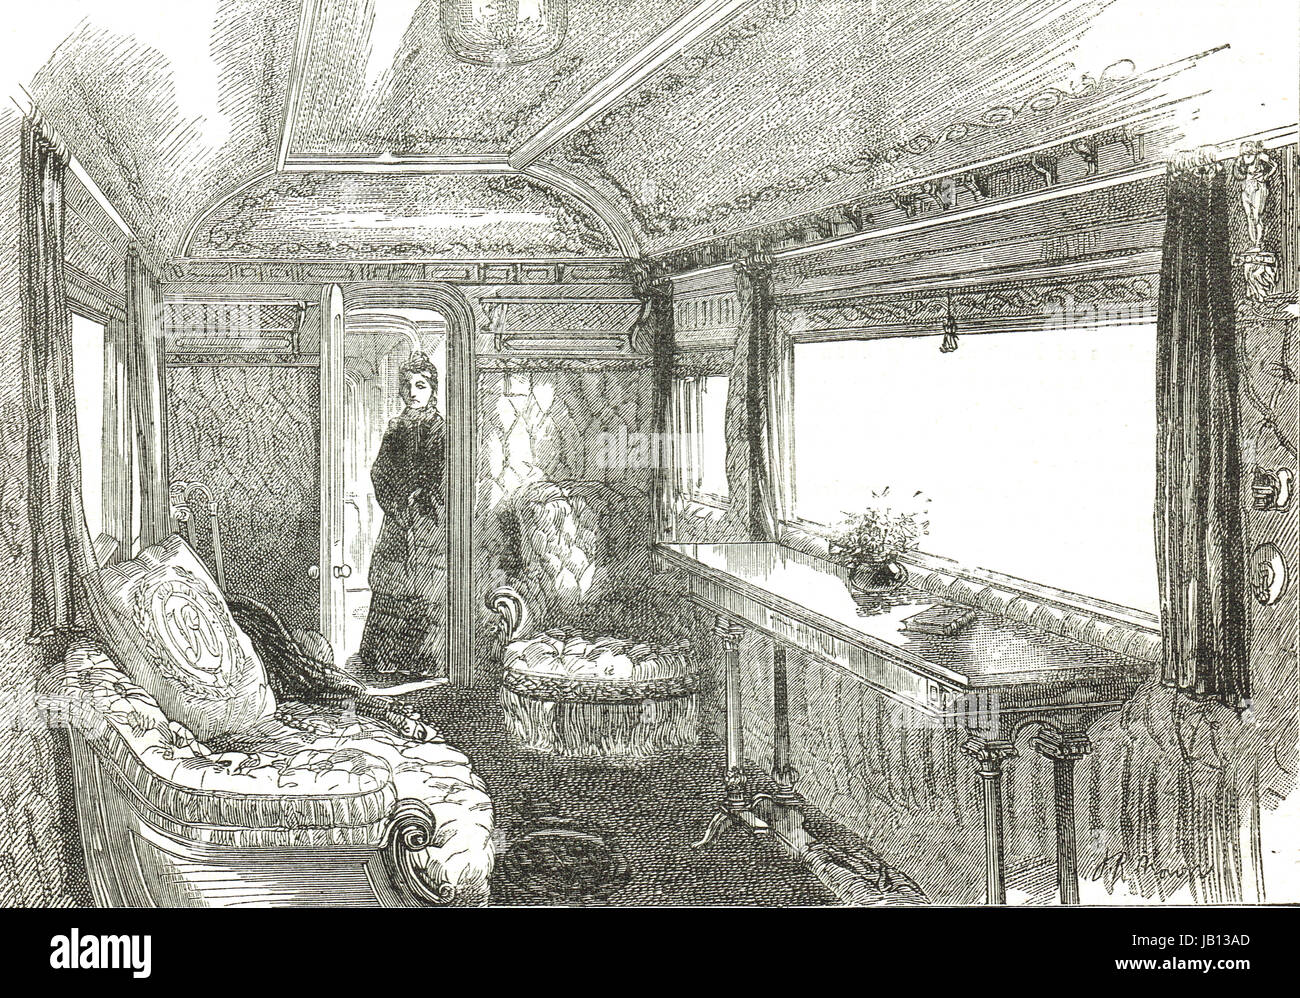 Queen Victoria's train saloon carriage - Stock Image